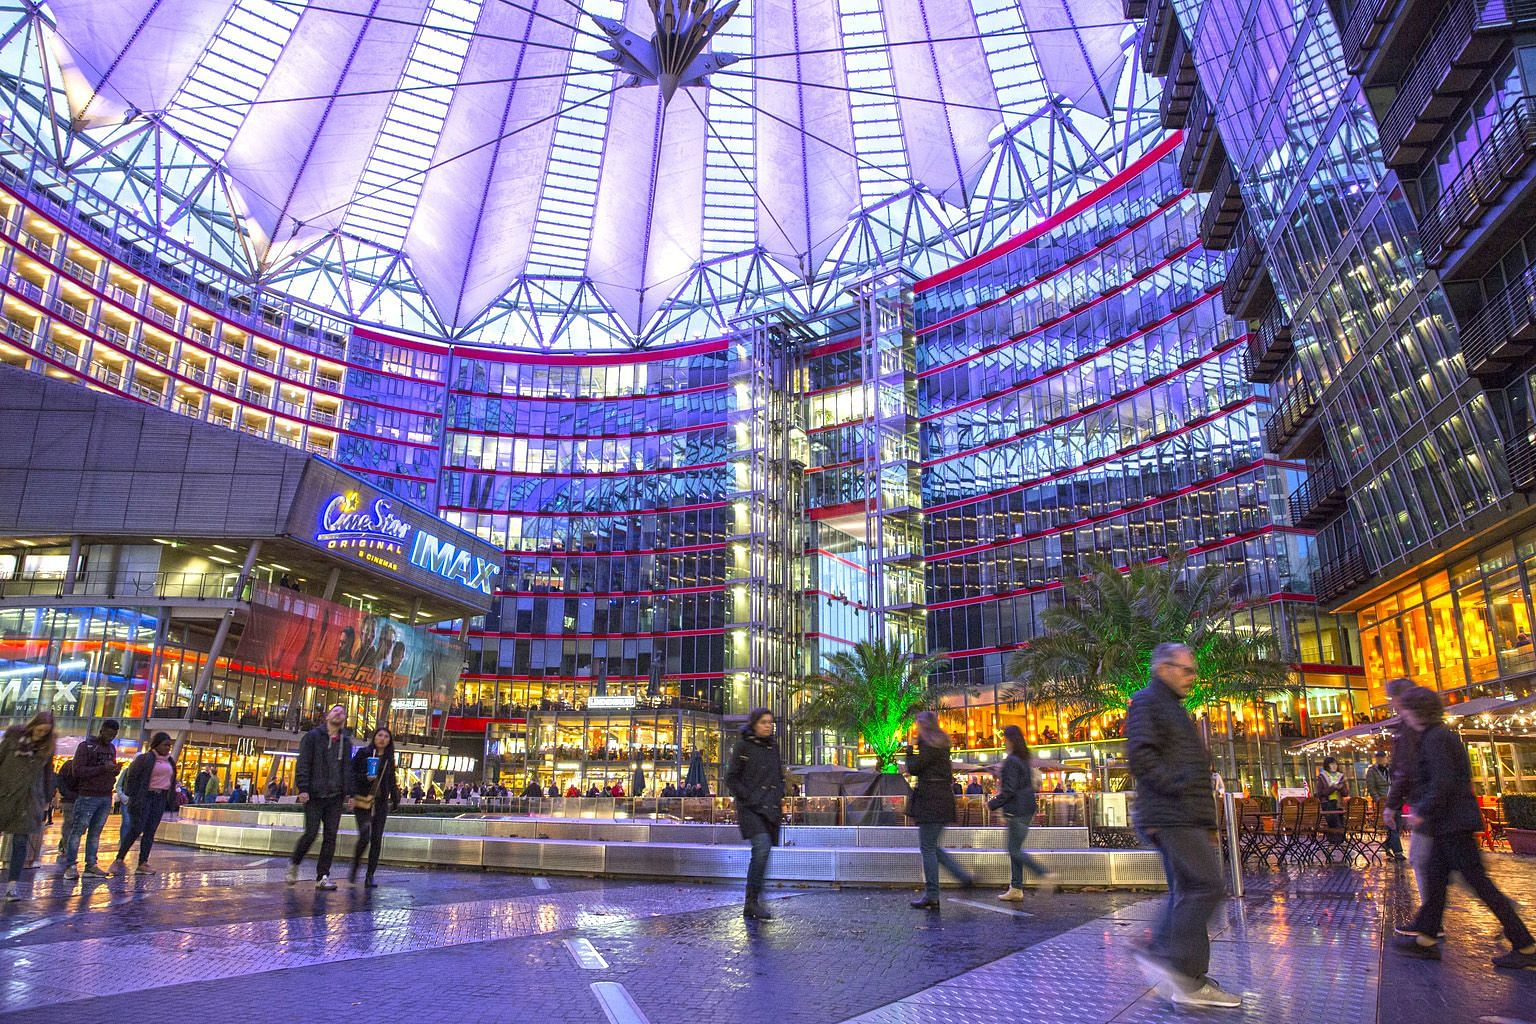 Located at Potsdamer Platz, the Sony Centre with its impressive pavilion roof is an example of how the square has morphed over the years into a landmark of the new, modern Berlin with skyscrapers and architectural masterpieces.